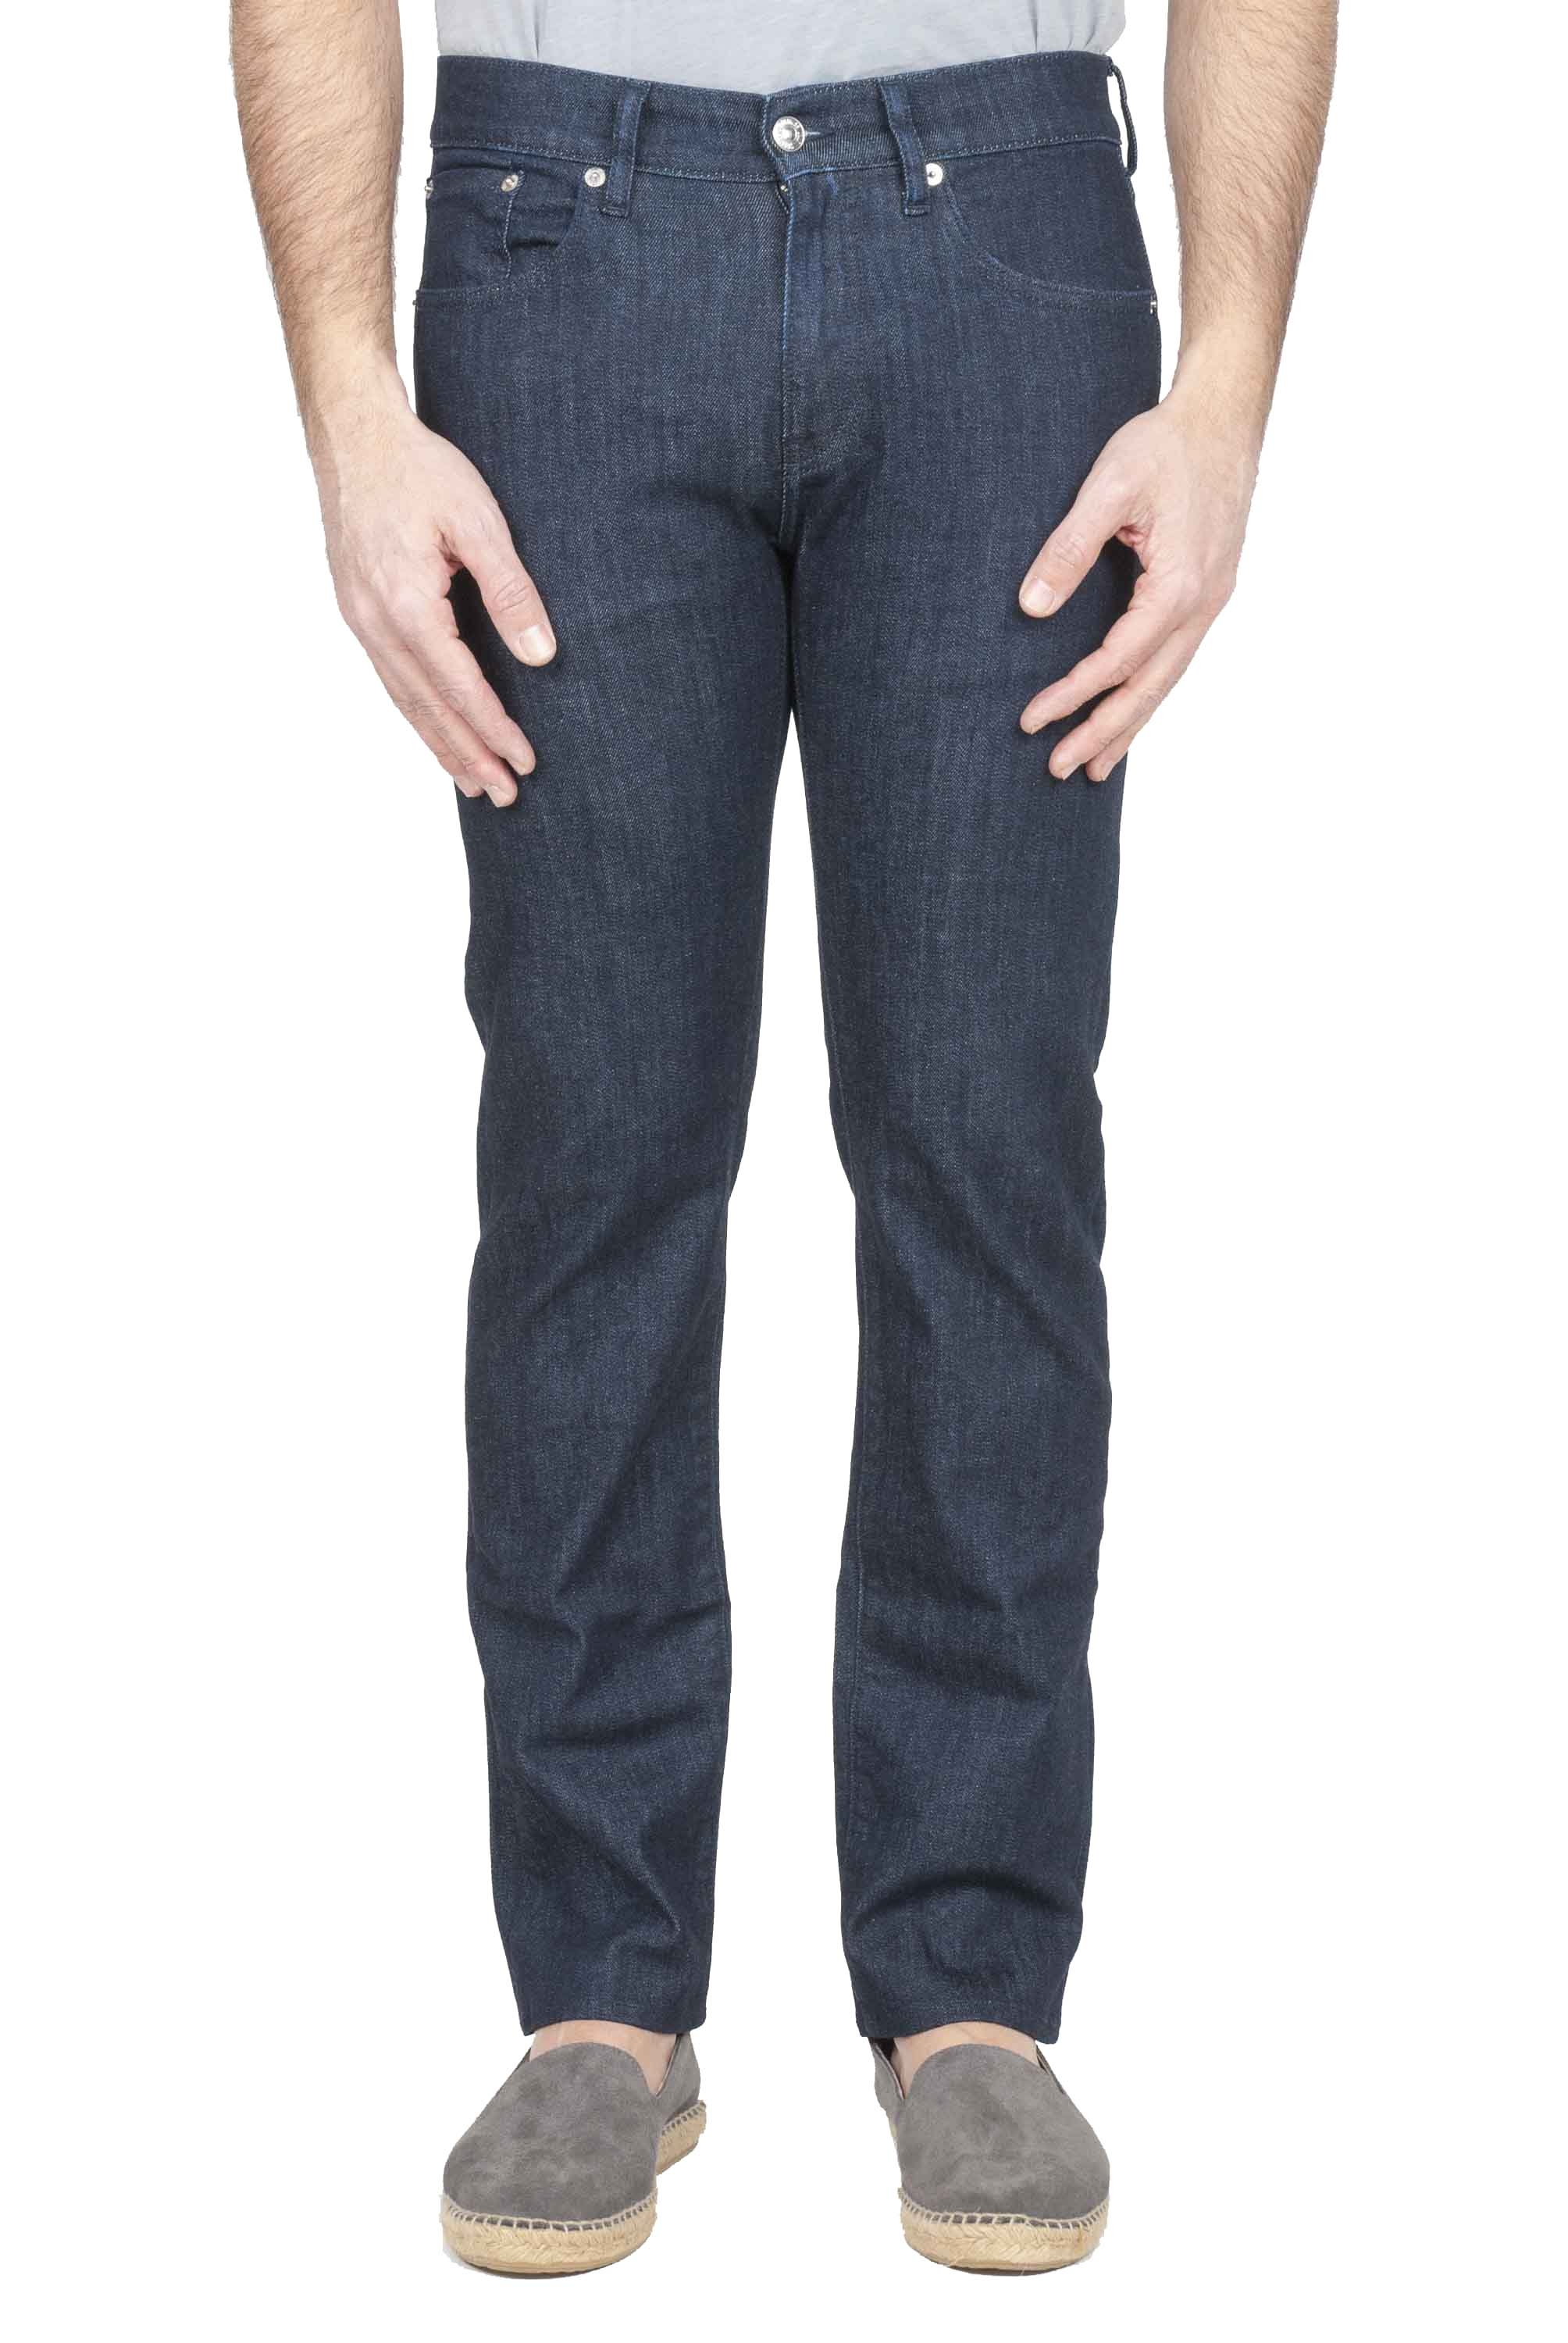 SBU 01116 Vaqueros en denim stretch 01